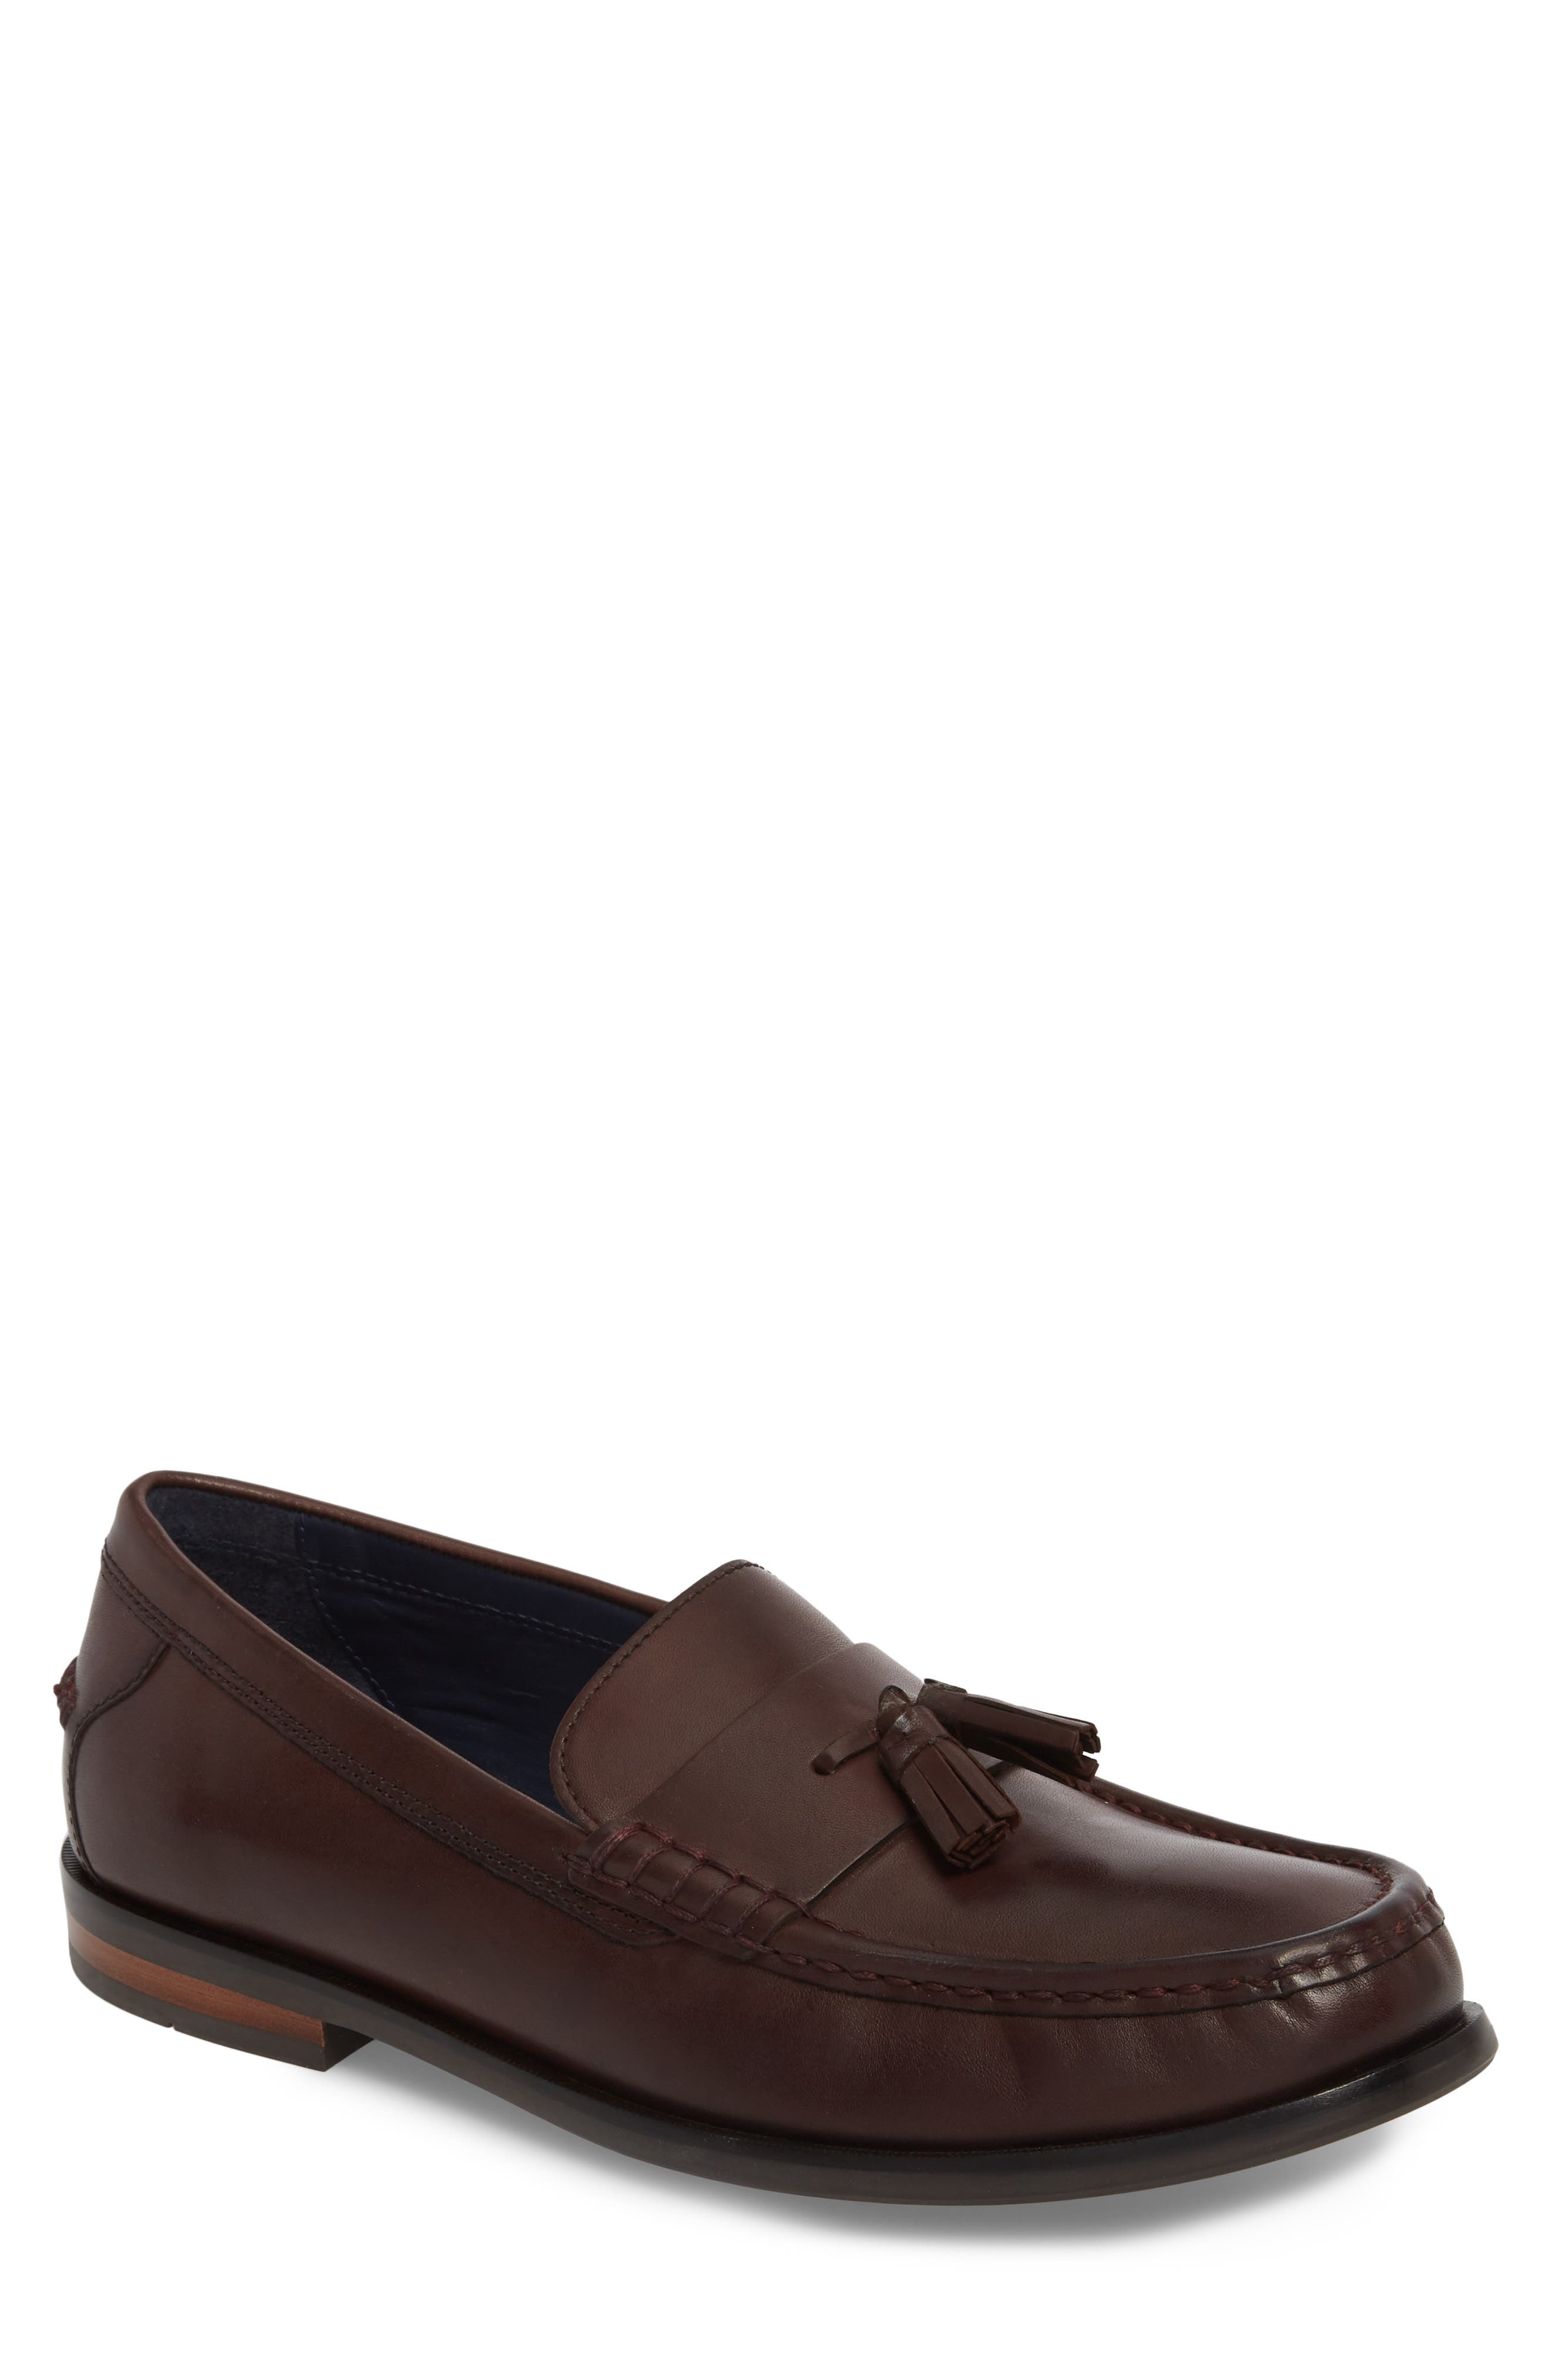 COLE HAAN Pinch Friday Tassel Loafer, Main, color, BURGUNDY LEATHER